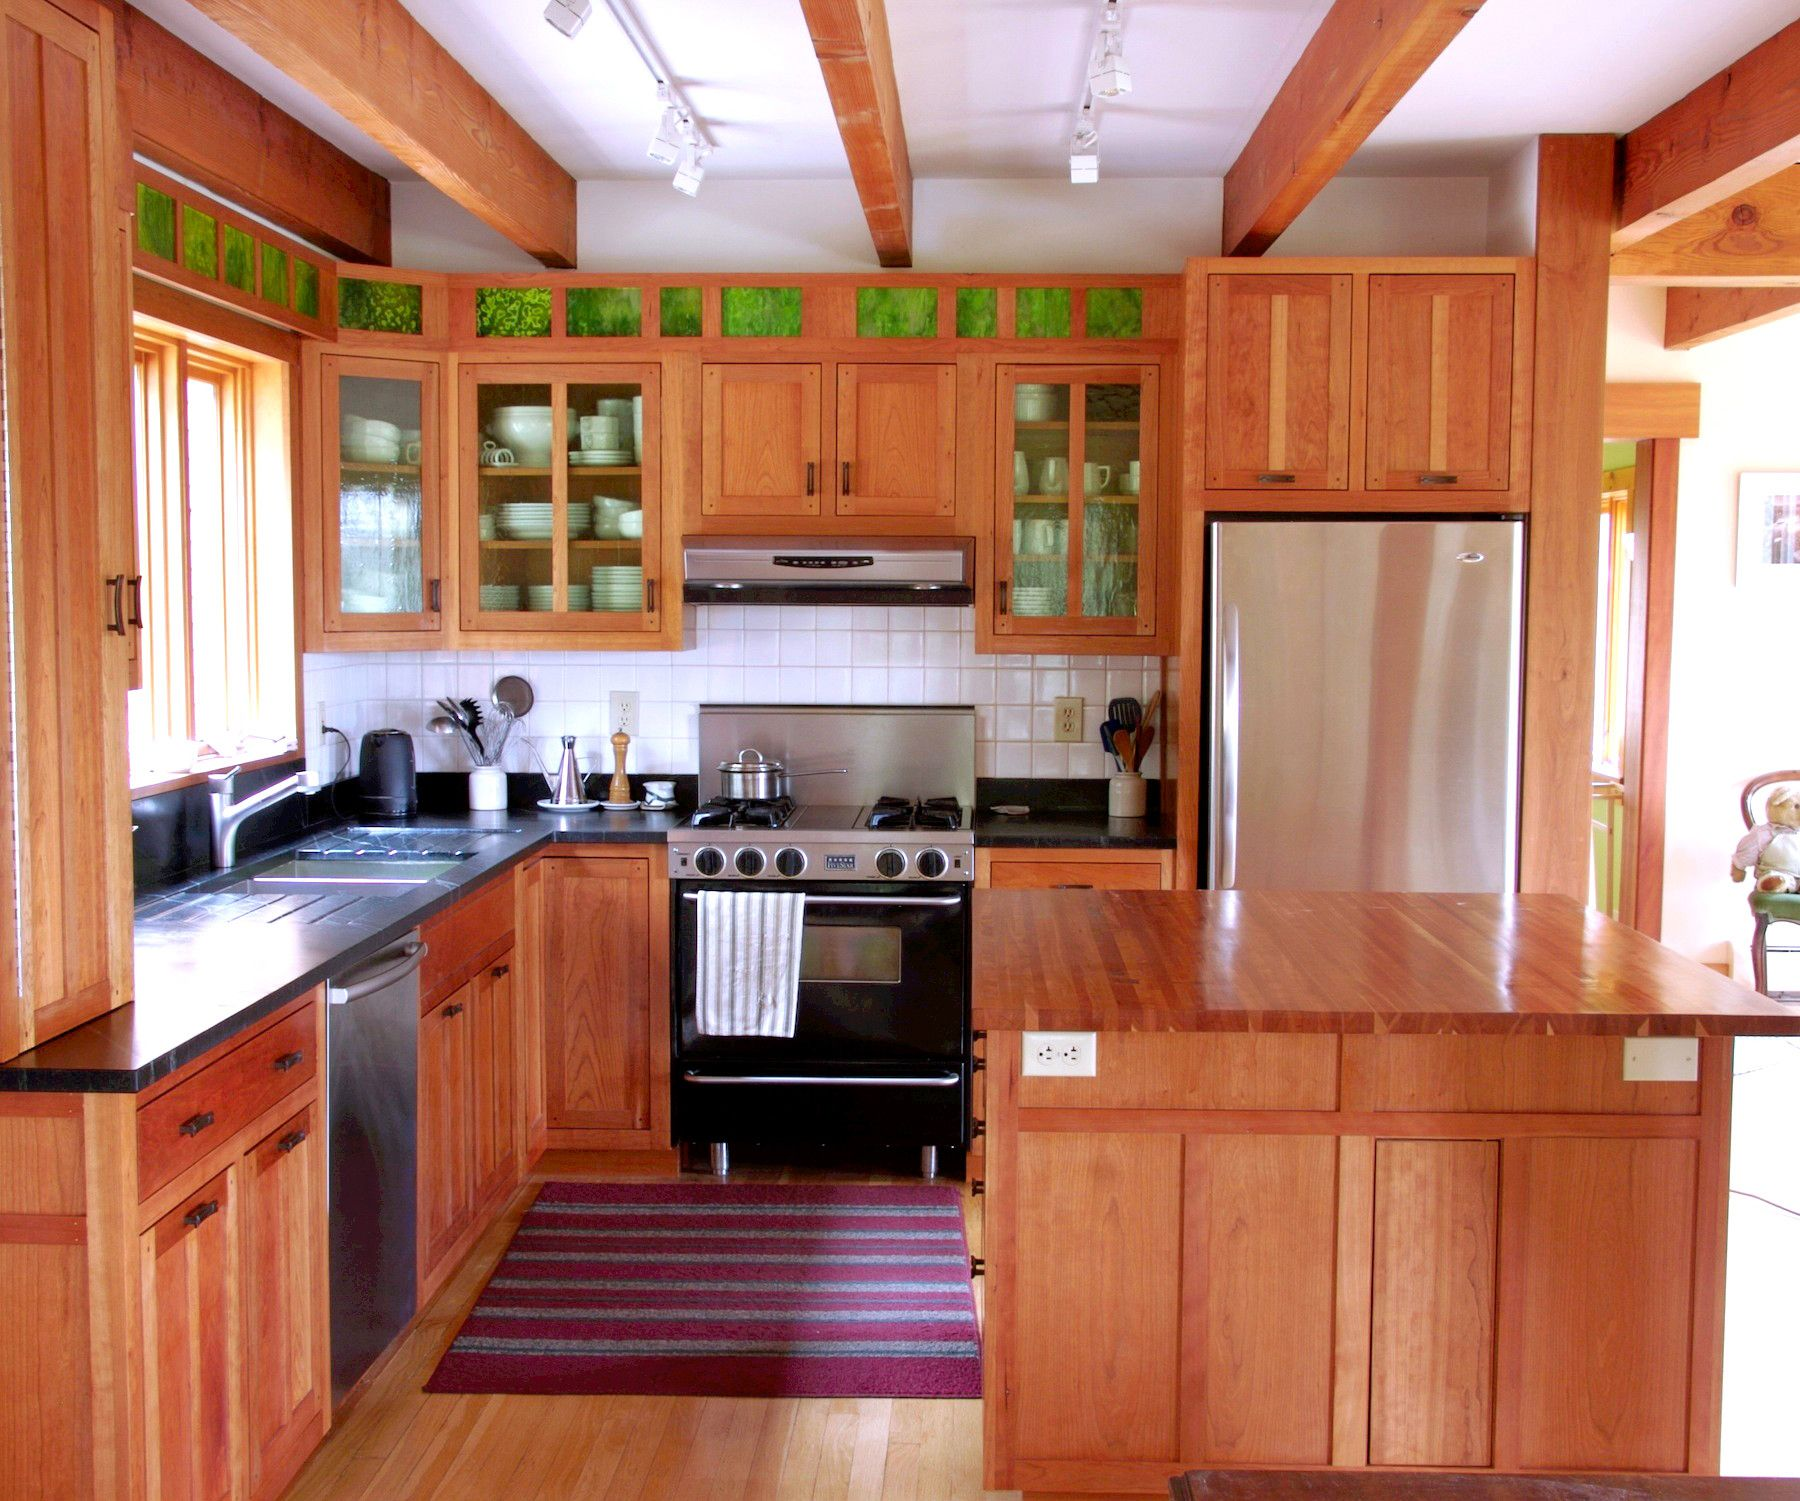 Cherry Modern Arts And Crafts Cabinetry With Stained Glass Kitchen Craft Cabinets Kitchen Cabinets Kitchen Cabinetry